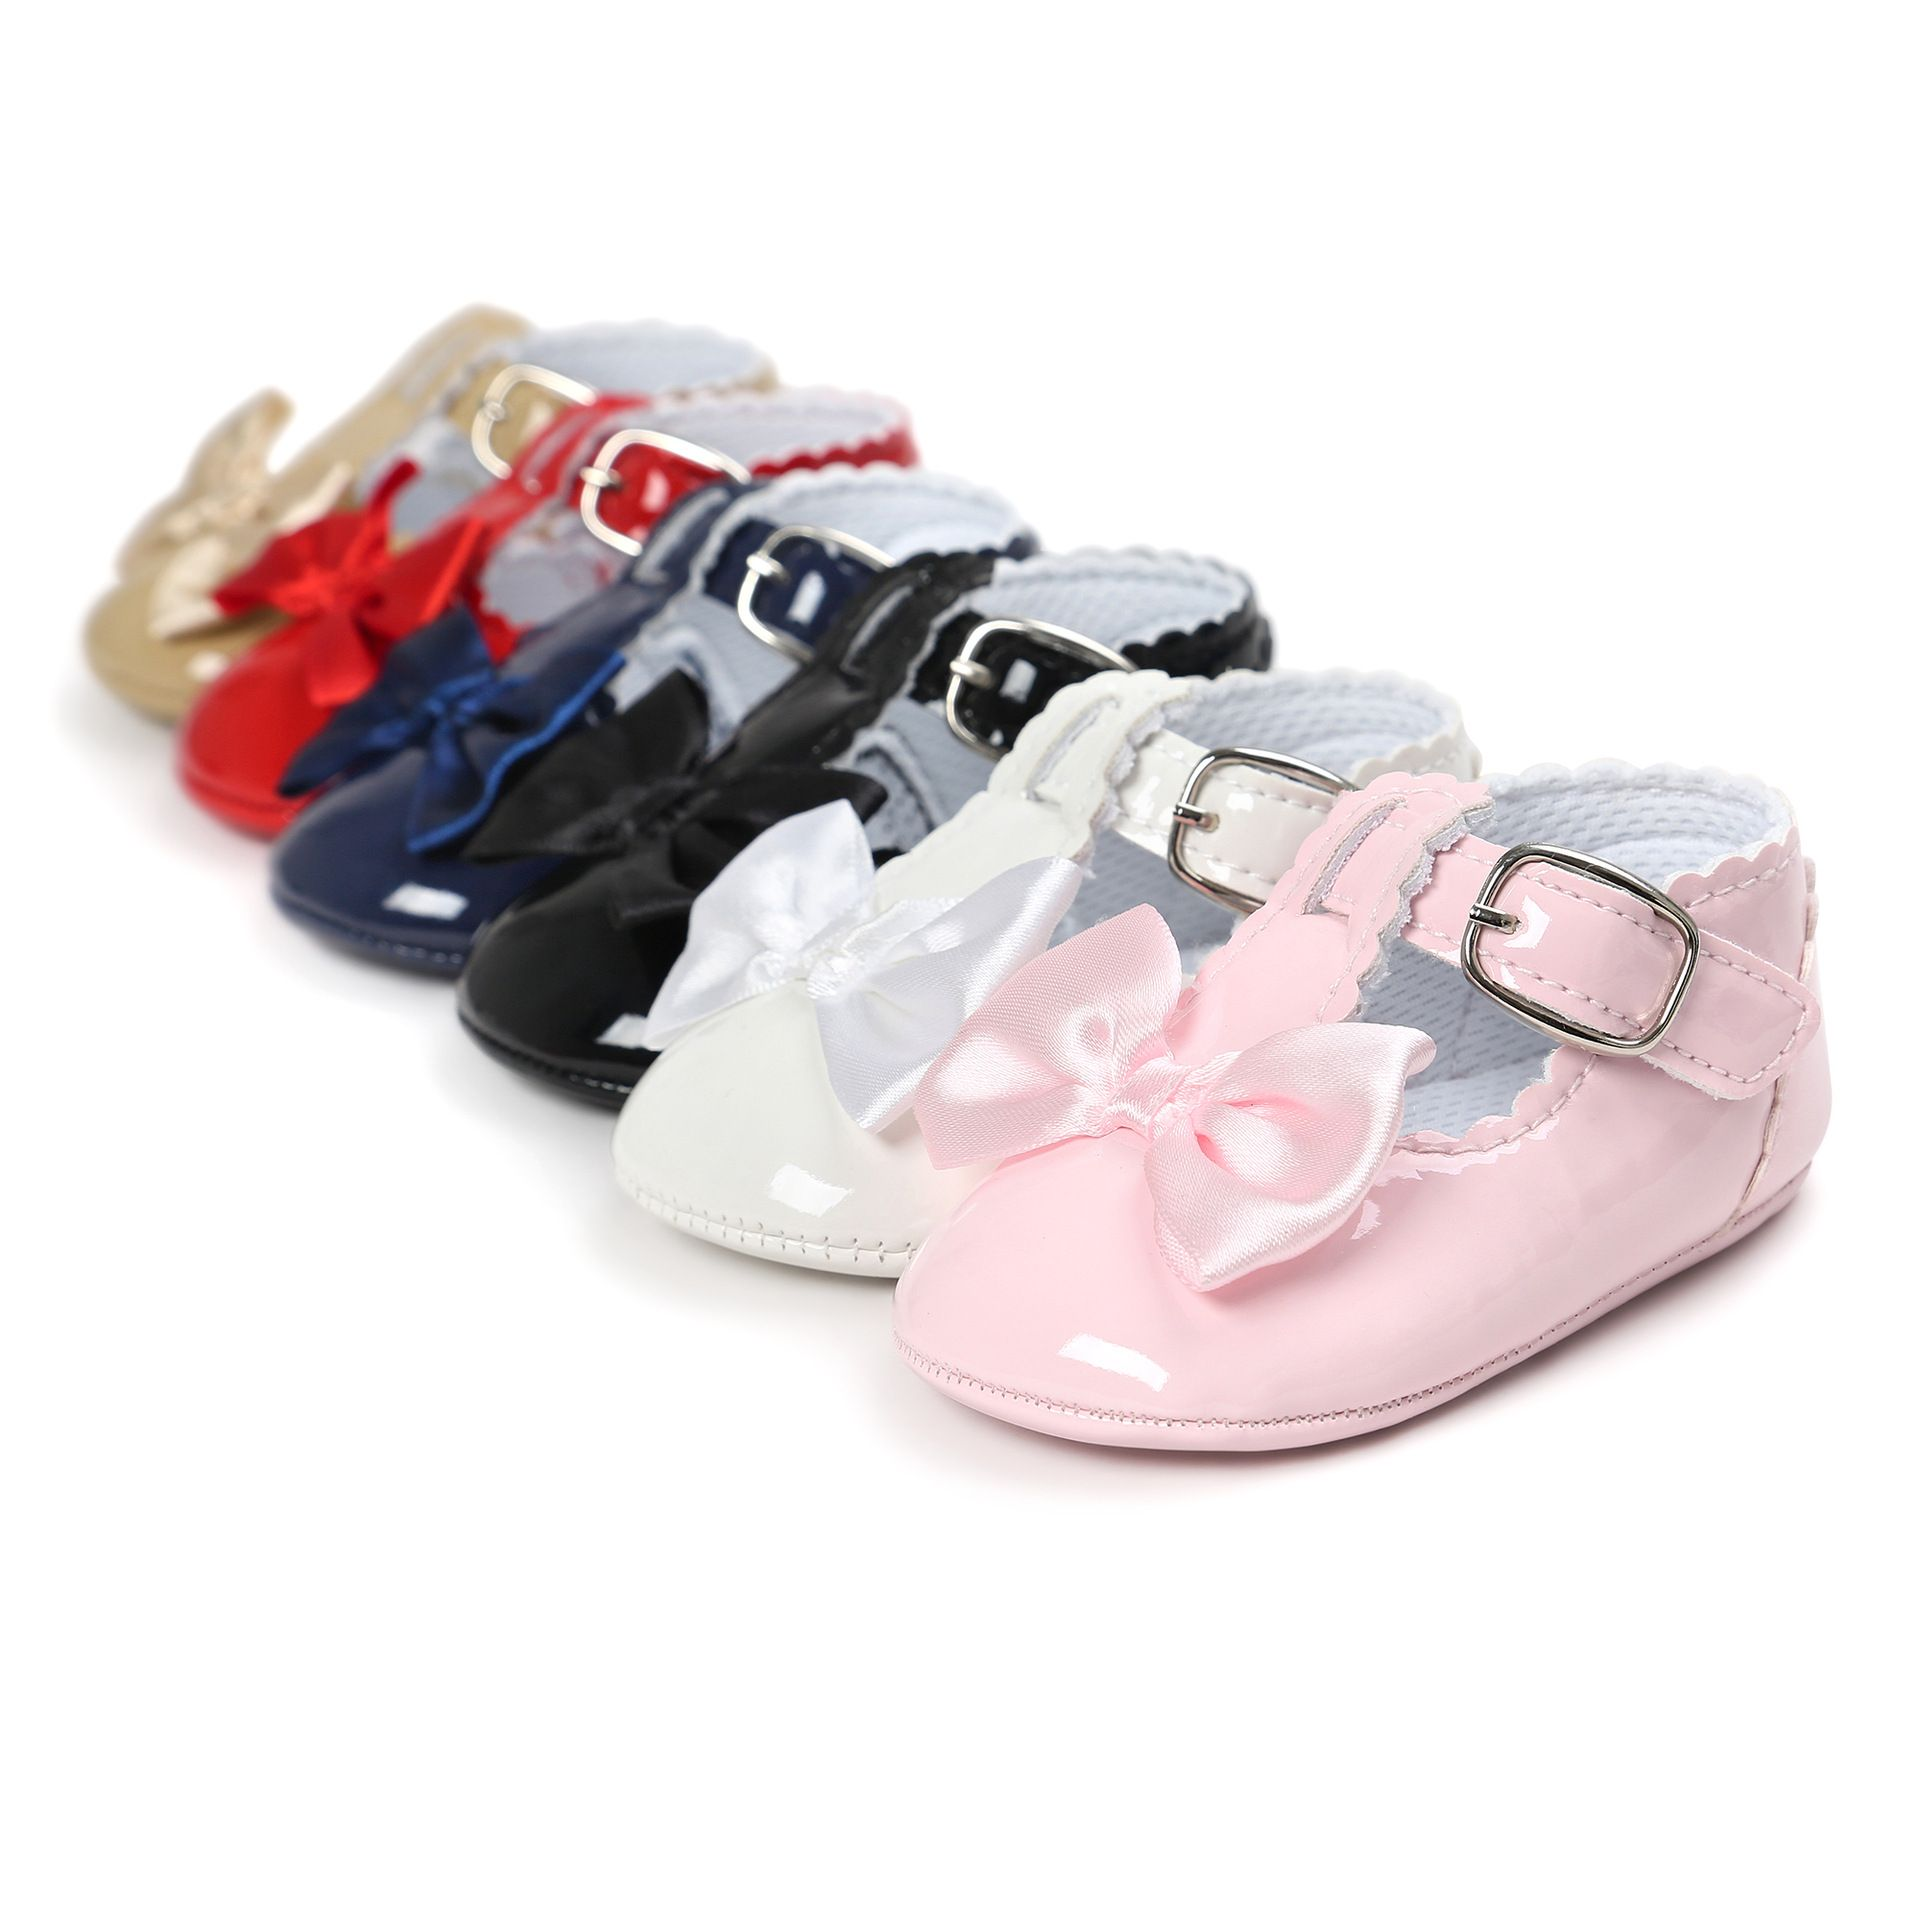 2017 Spring and Summer New 0 1 Year Old Female Baby Shoes Lovely